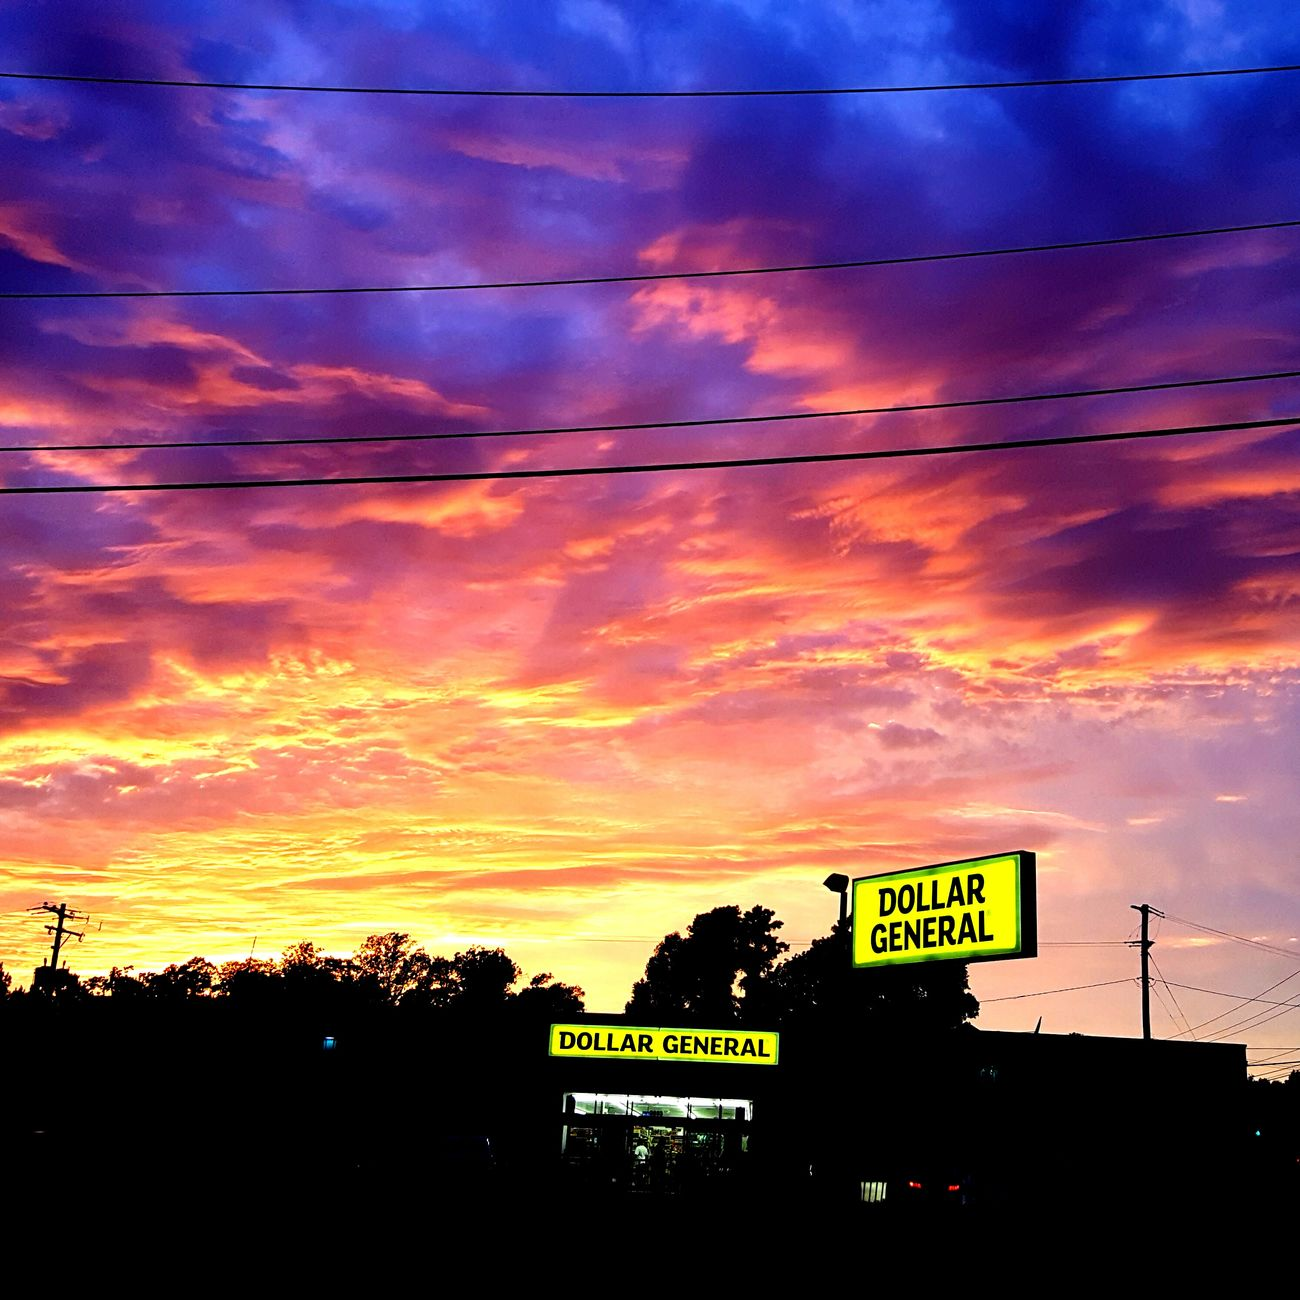 Cloud - Sky Text Silhouette Sunset Communication Western Script Sky Cloud - Sky Cloud Cable Scenics Outdoors Dramatic Sky Cloudy Tranquil Scene Power Line  Nature Atmosphere Vibrant Color Cloudscape Outline EyeEm Masterclass Cloudporn Shootermag RVA